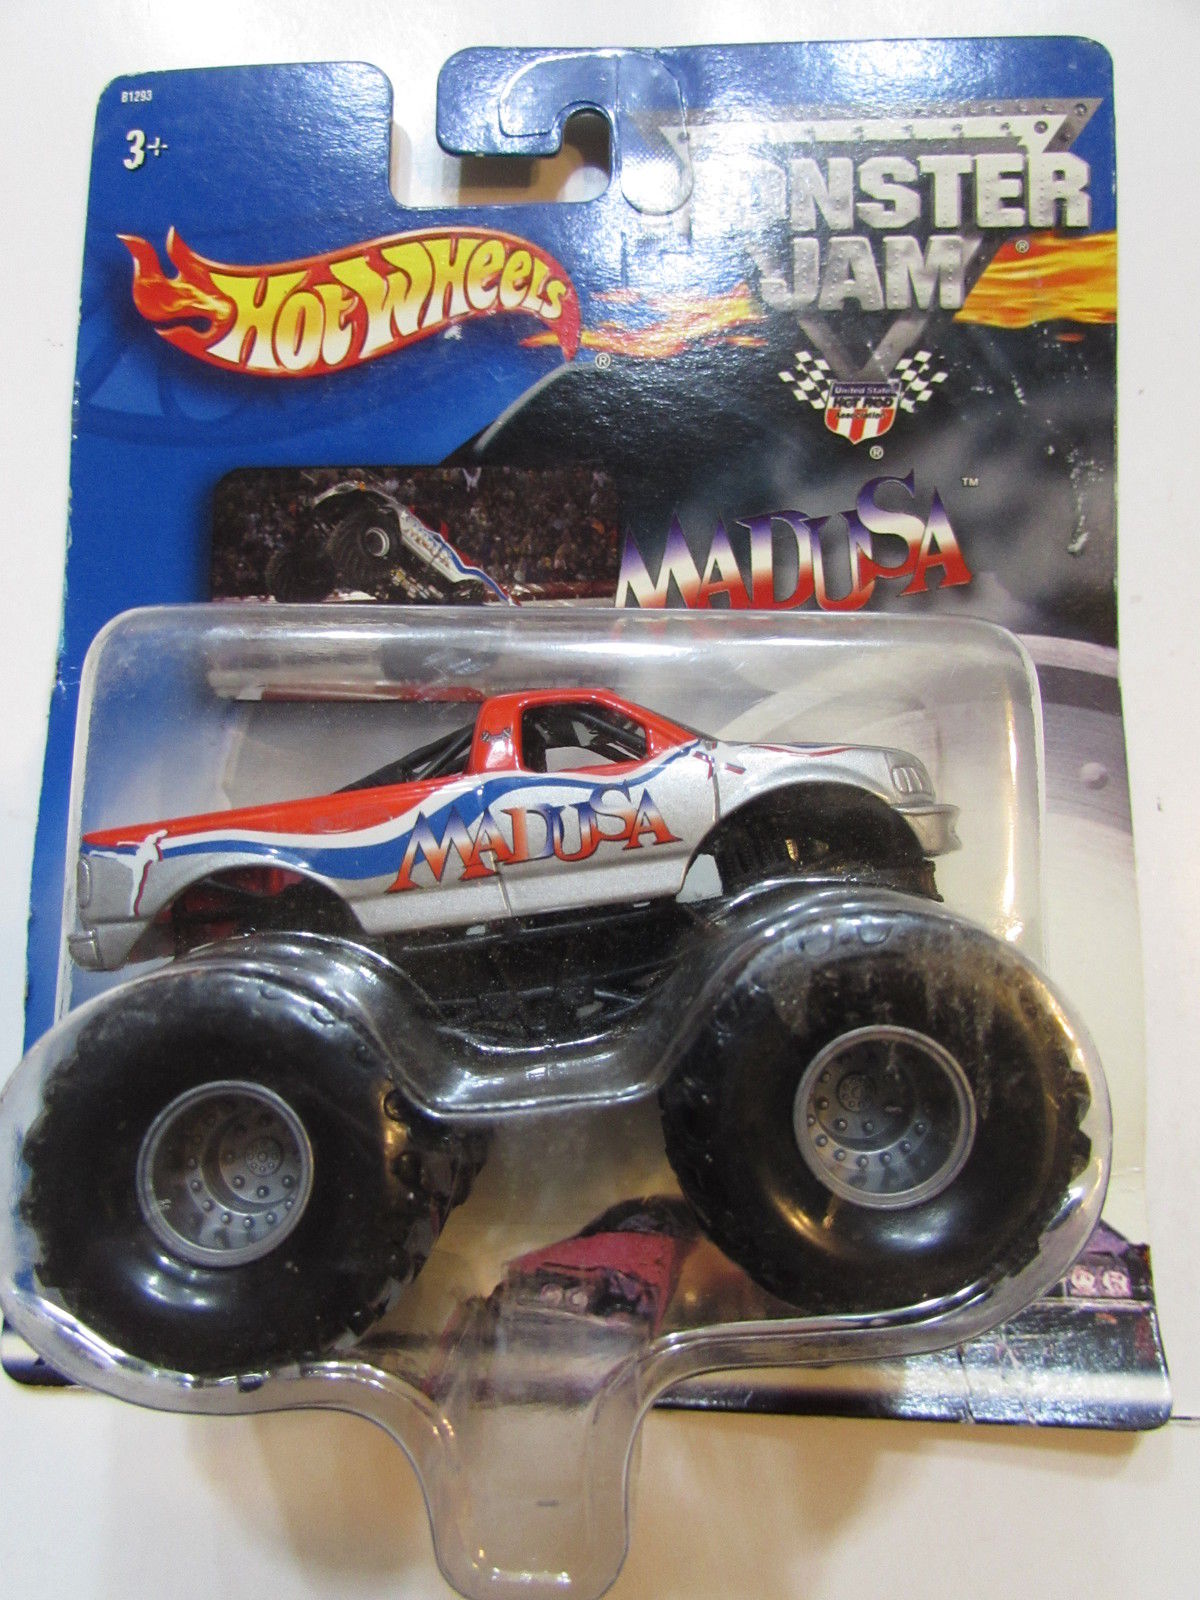 HOT WHEEL 2002 MONSTER JAM MADUSA